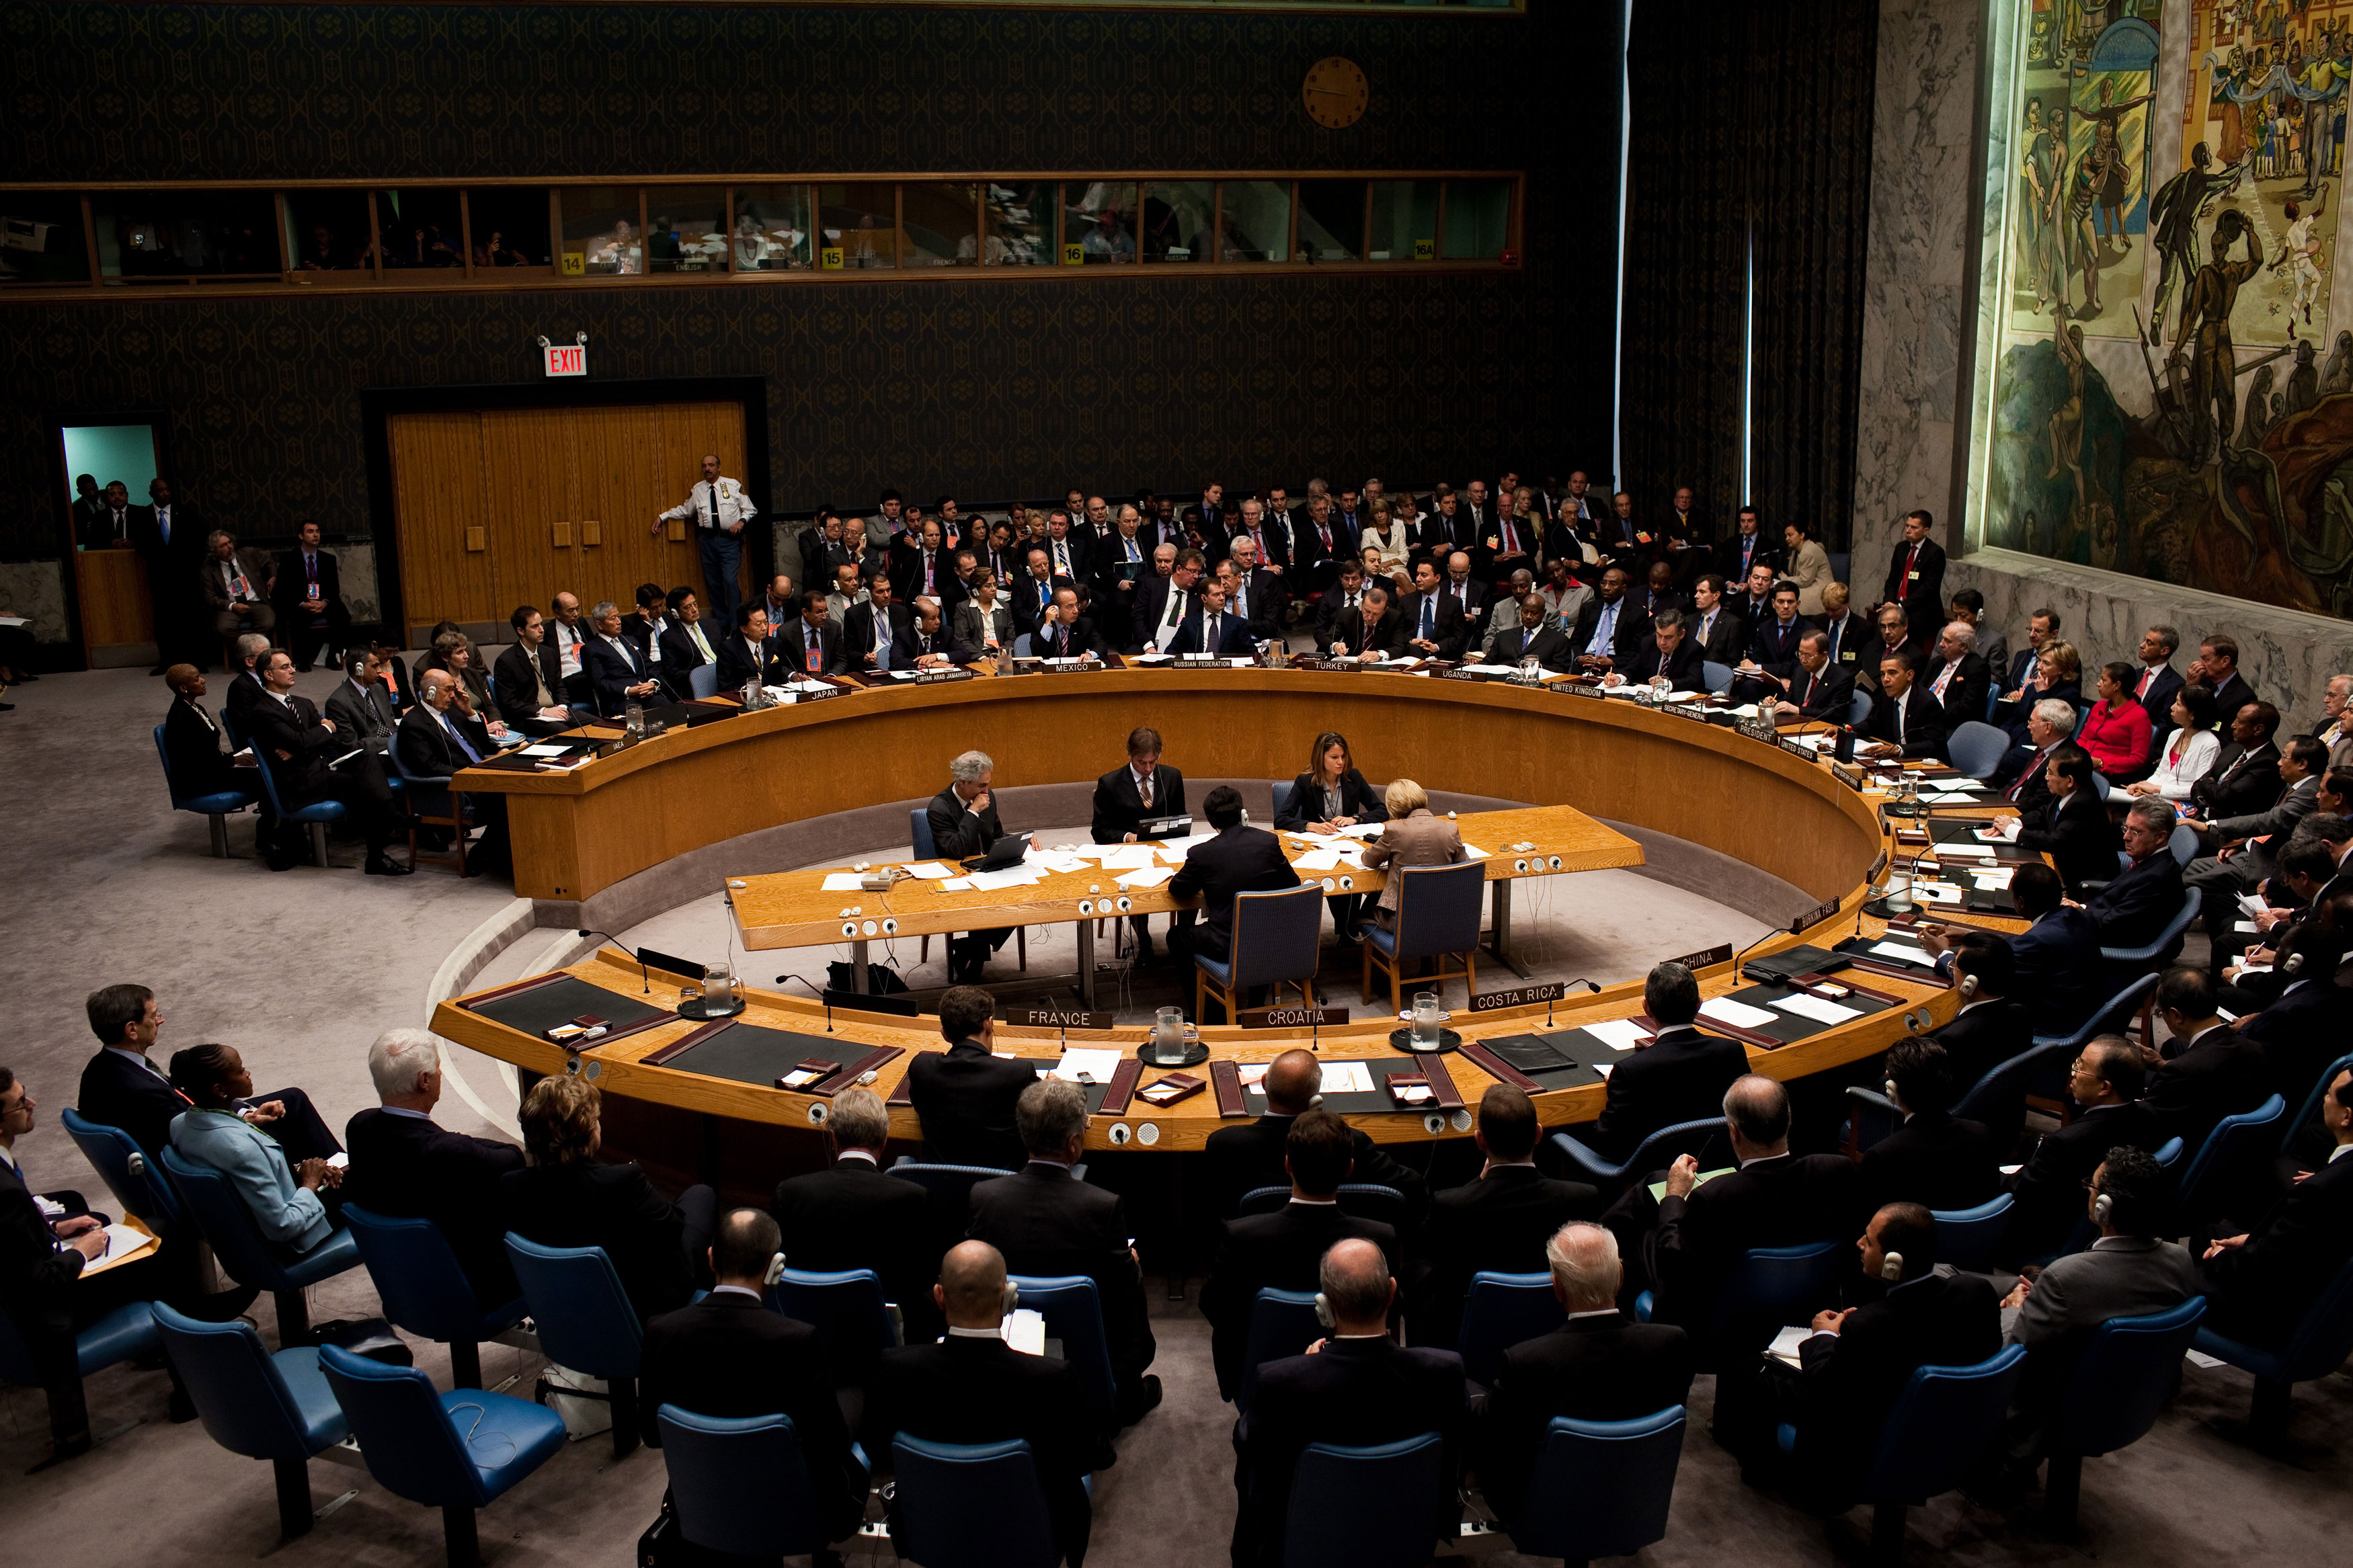 BREAKING: UN Security Council Unanimously Passes Iran Deal